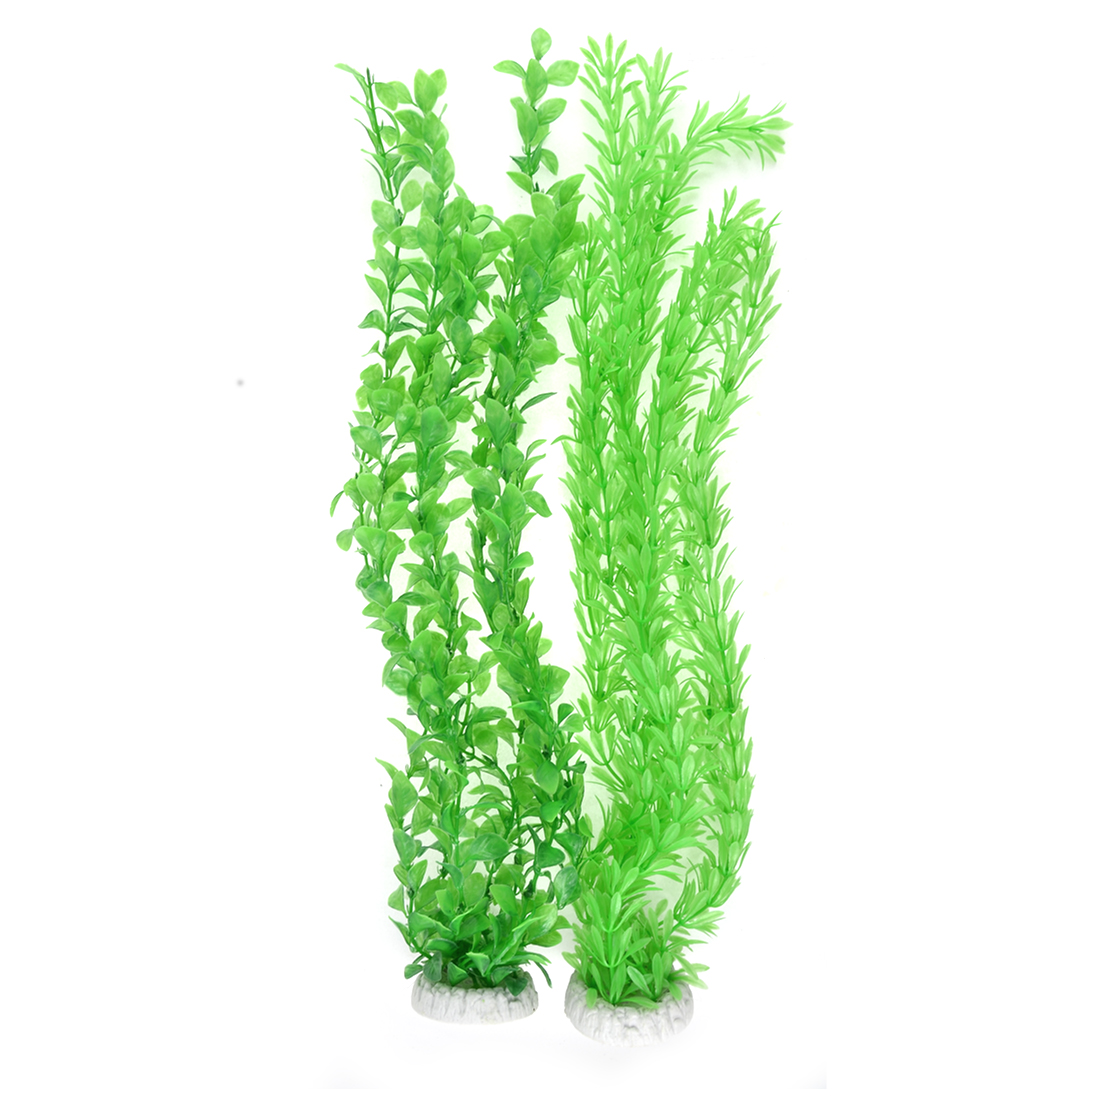 Aquarium Decor Plastic Fish Tank Long Artificial Aquatic Plants 45cm High Green 2pcs